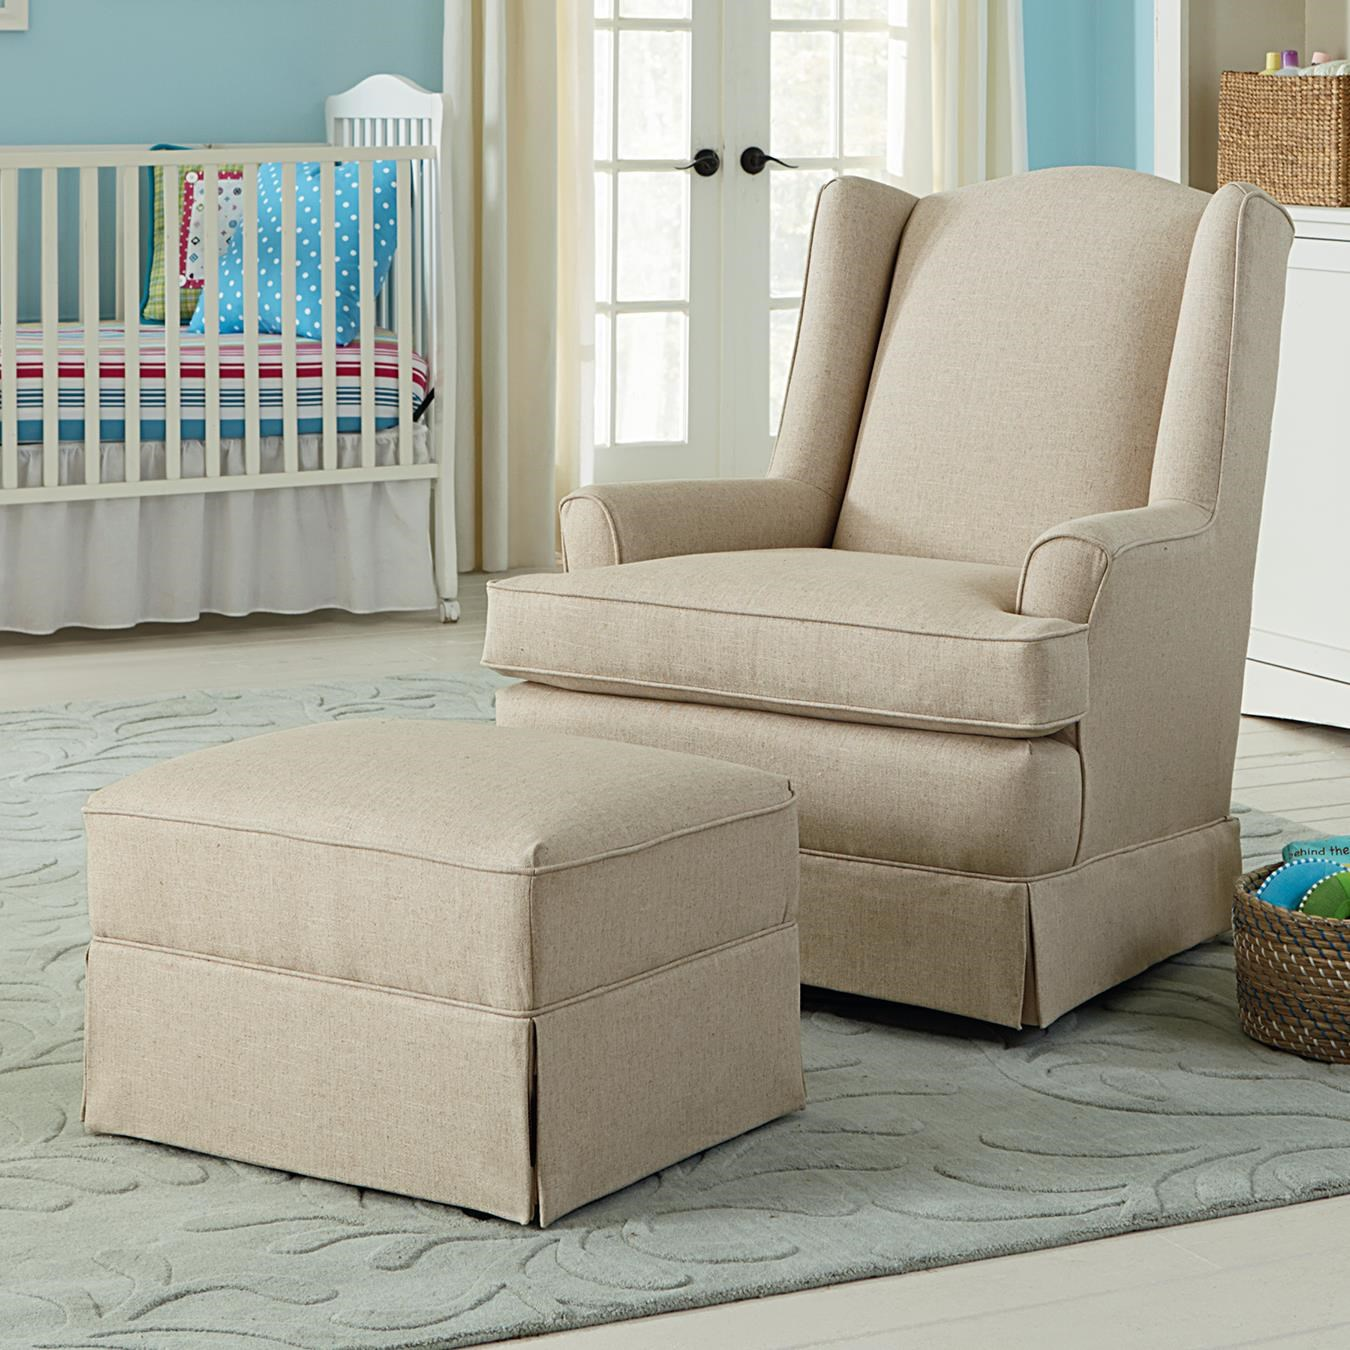 Ordinaire Best Chairs Storytime Series Storytime Swivel Chairs And Ottomans Natasha Swivel  Glider Chair And Gliding Ottoman